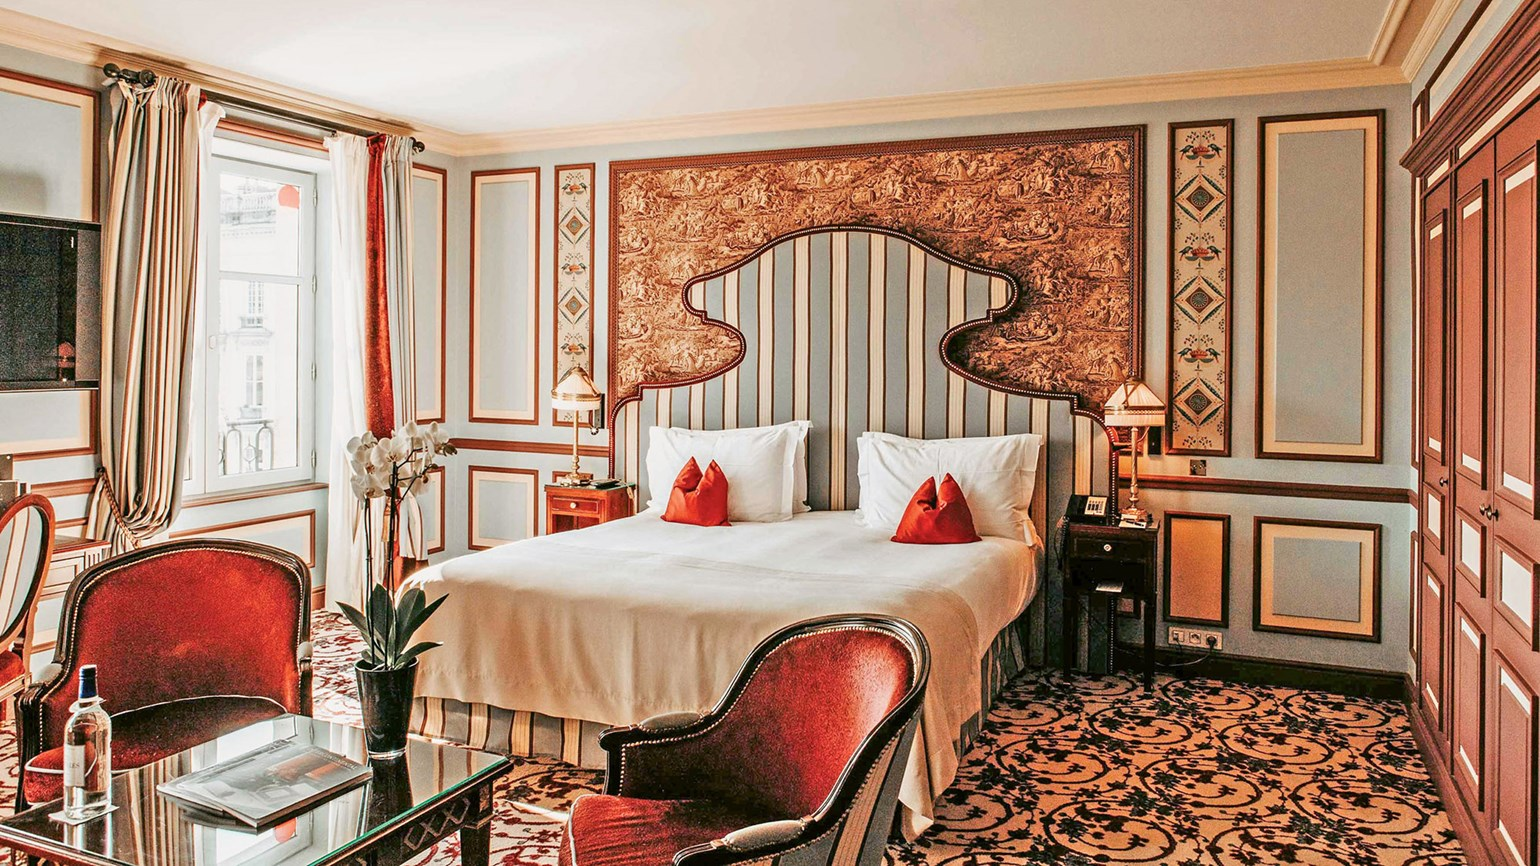 Classic elegance at IHG's Le Grand Hotel in Bordeaux